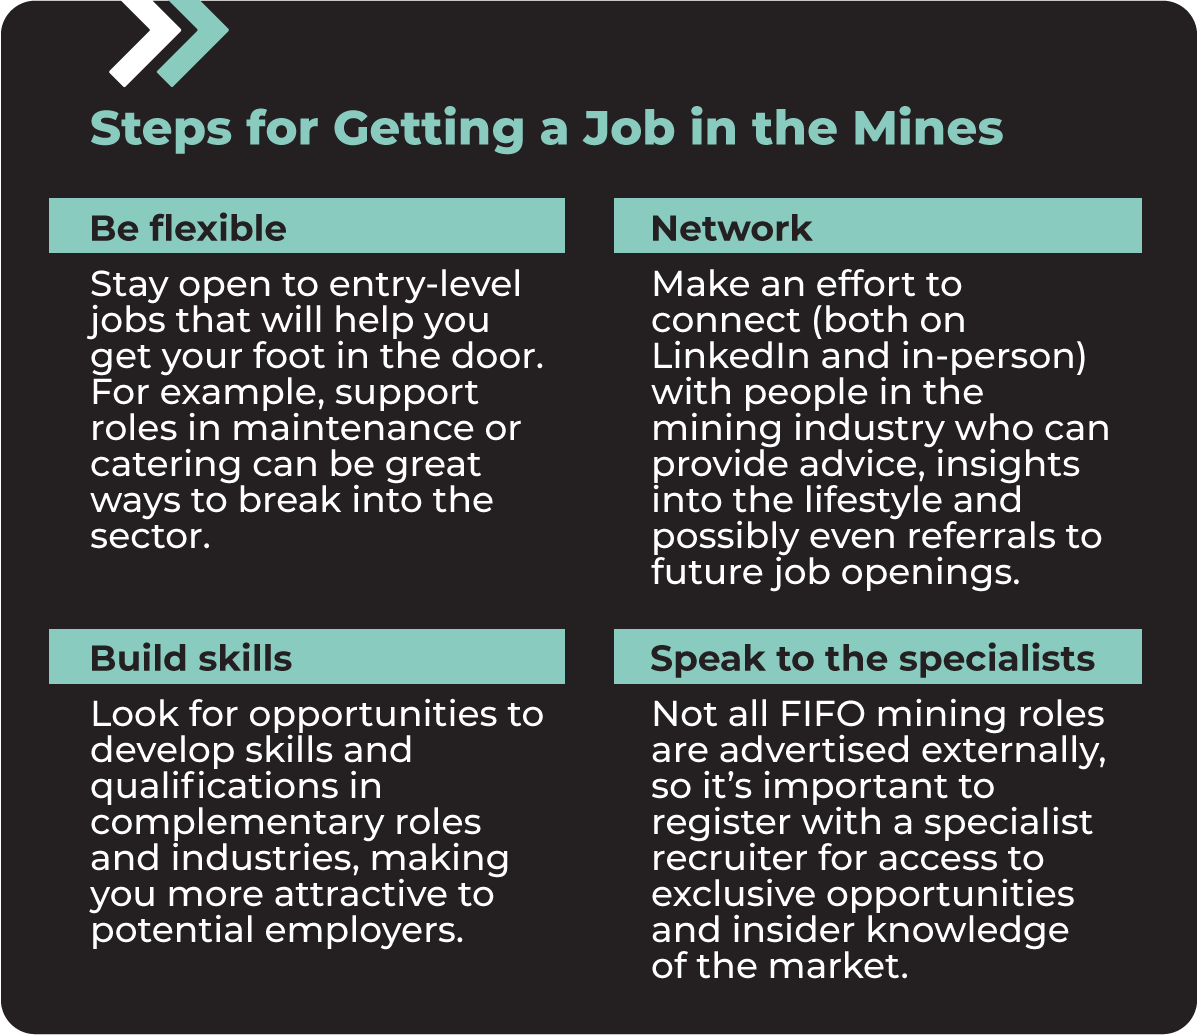 Steps for Getting a Job in the Mines